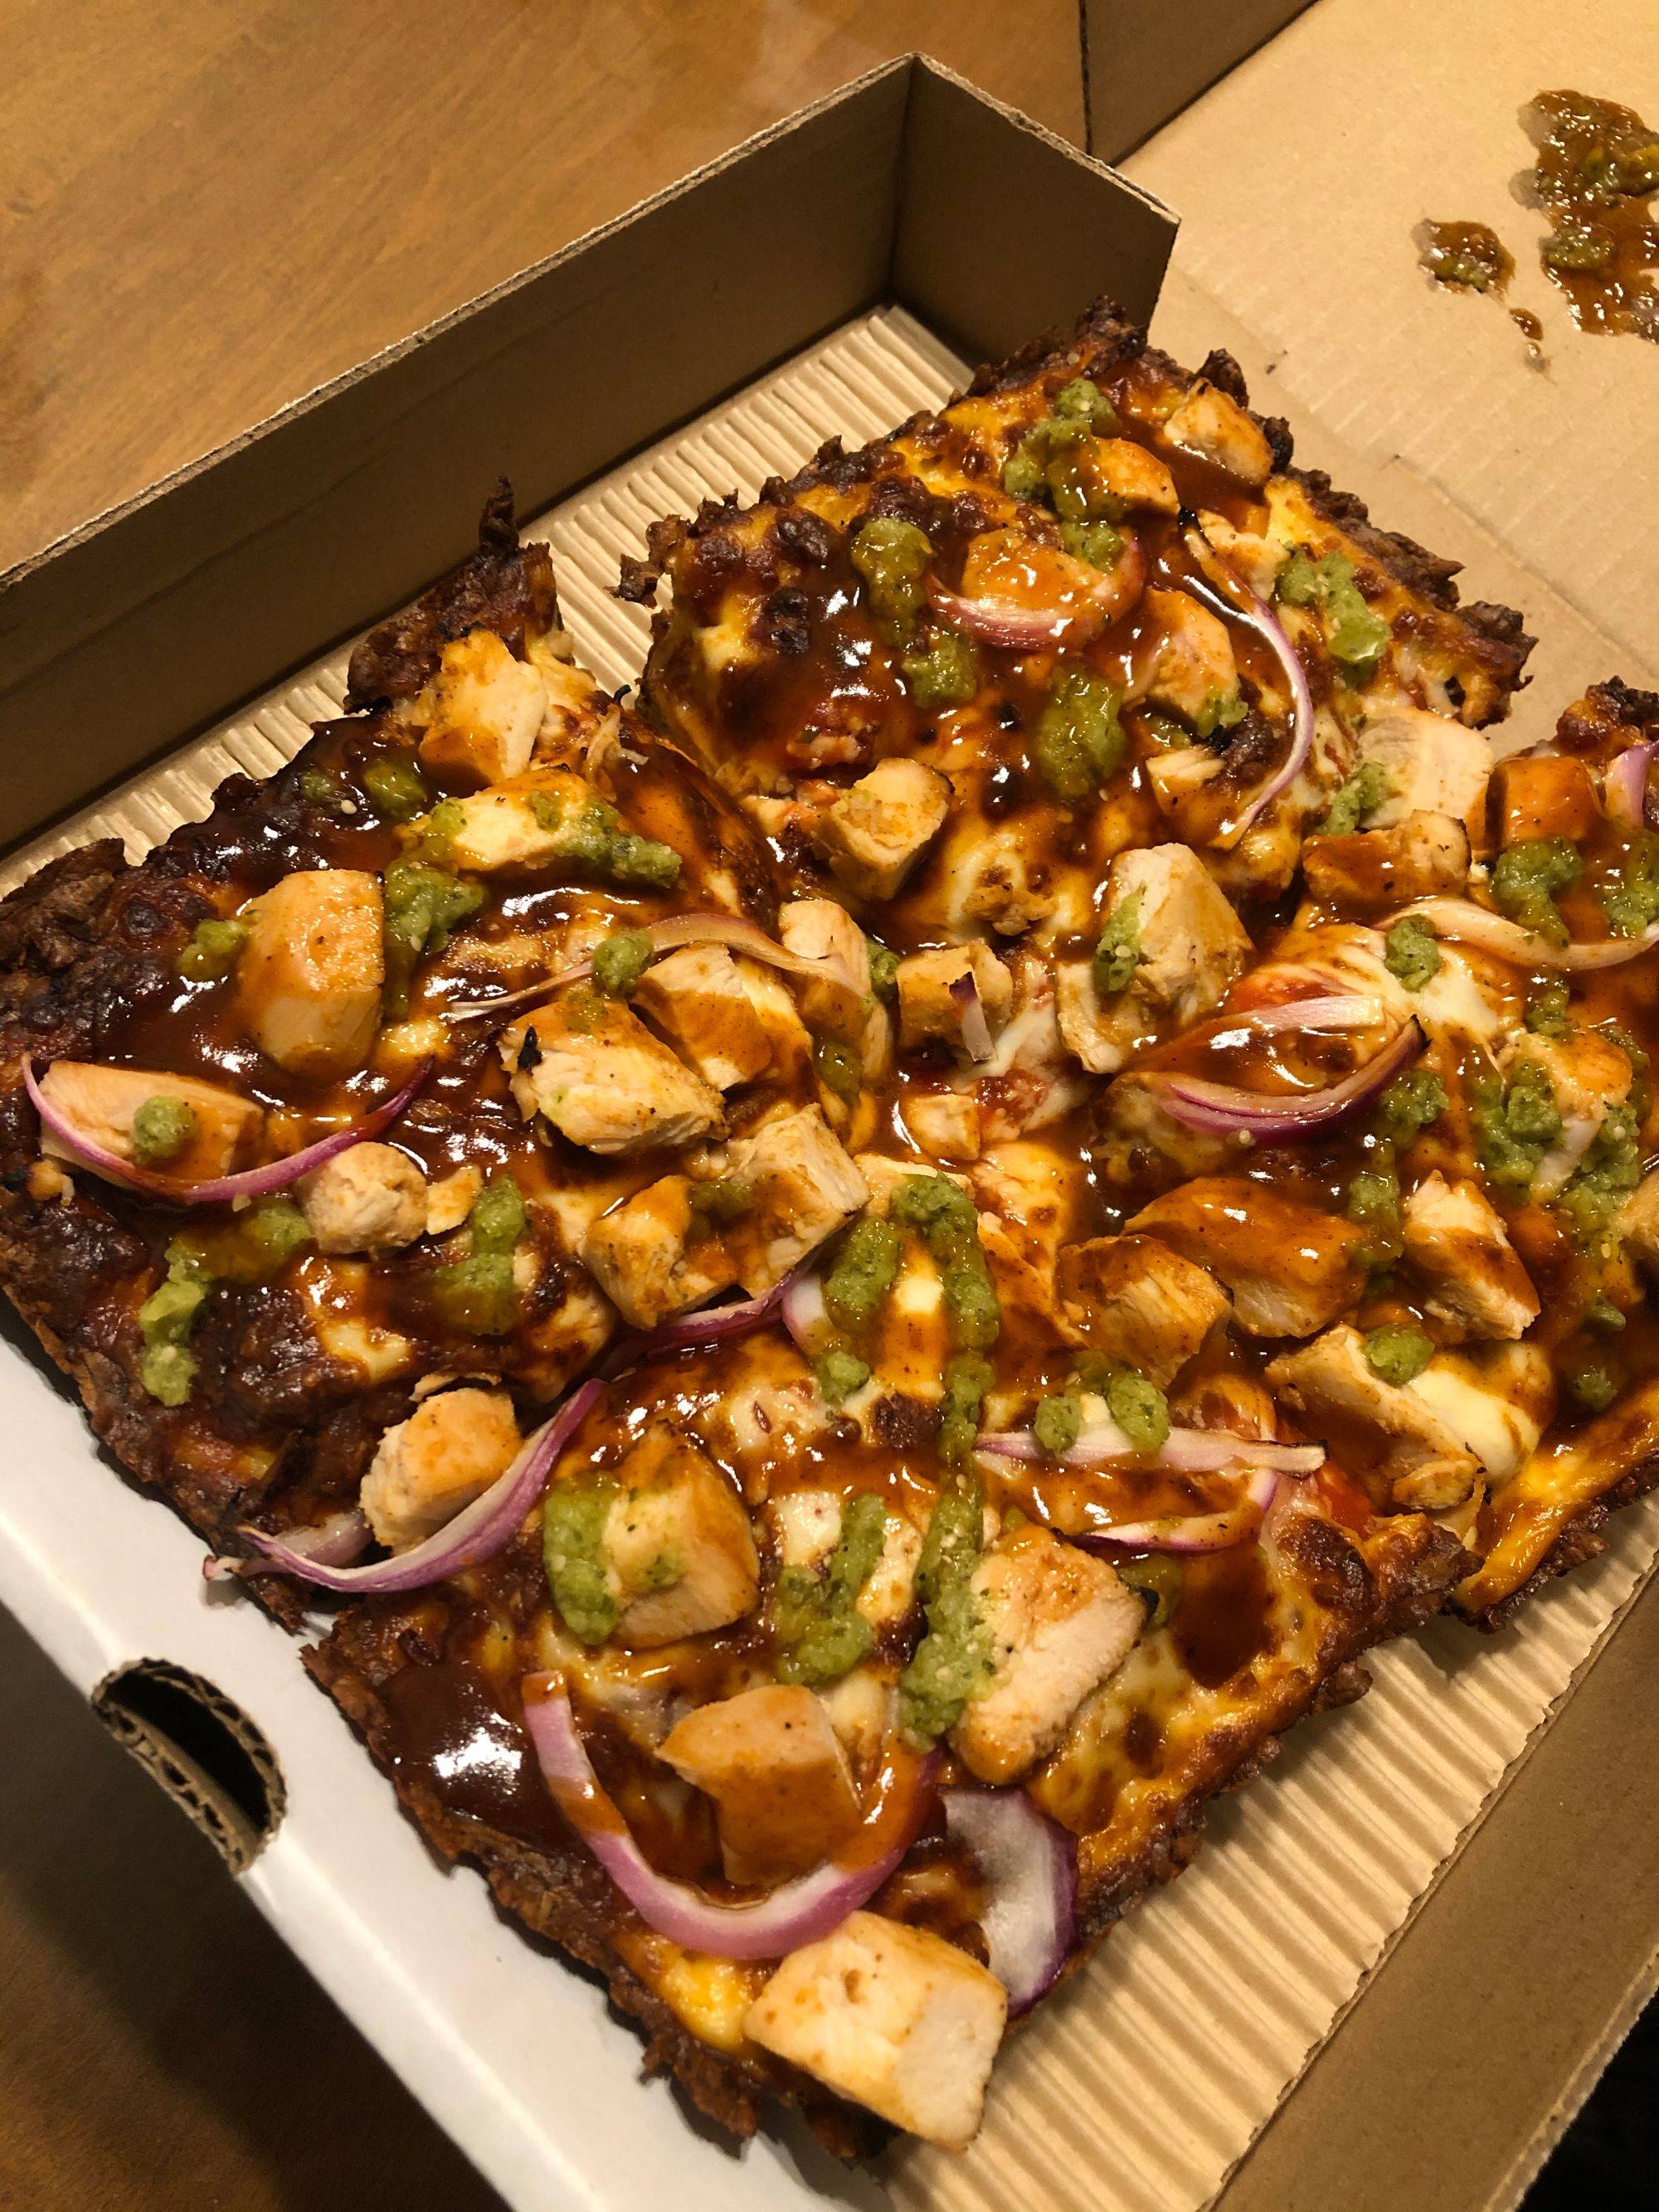 A Detroit-style pizza: square, in a cardboard box, covered in chunks of chicken, bbq sauce, salsa verde and red onions.